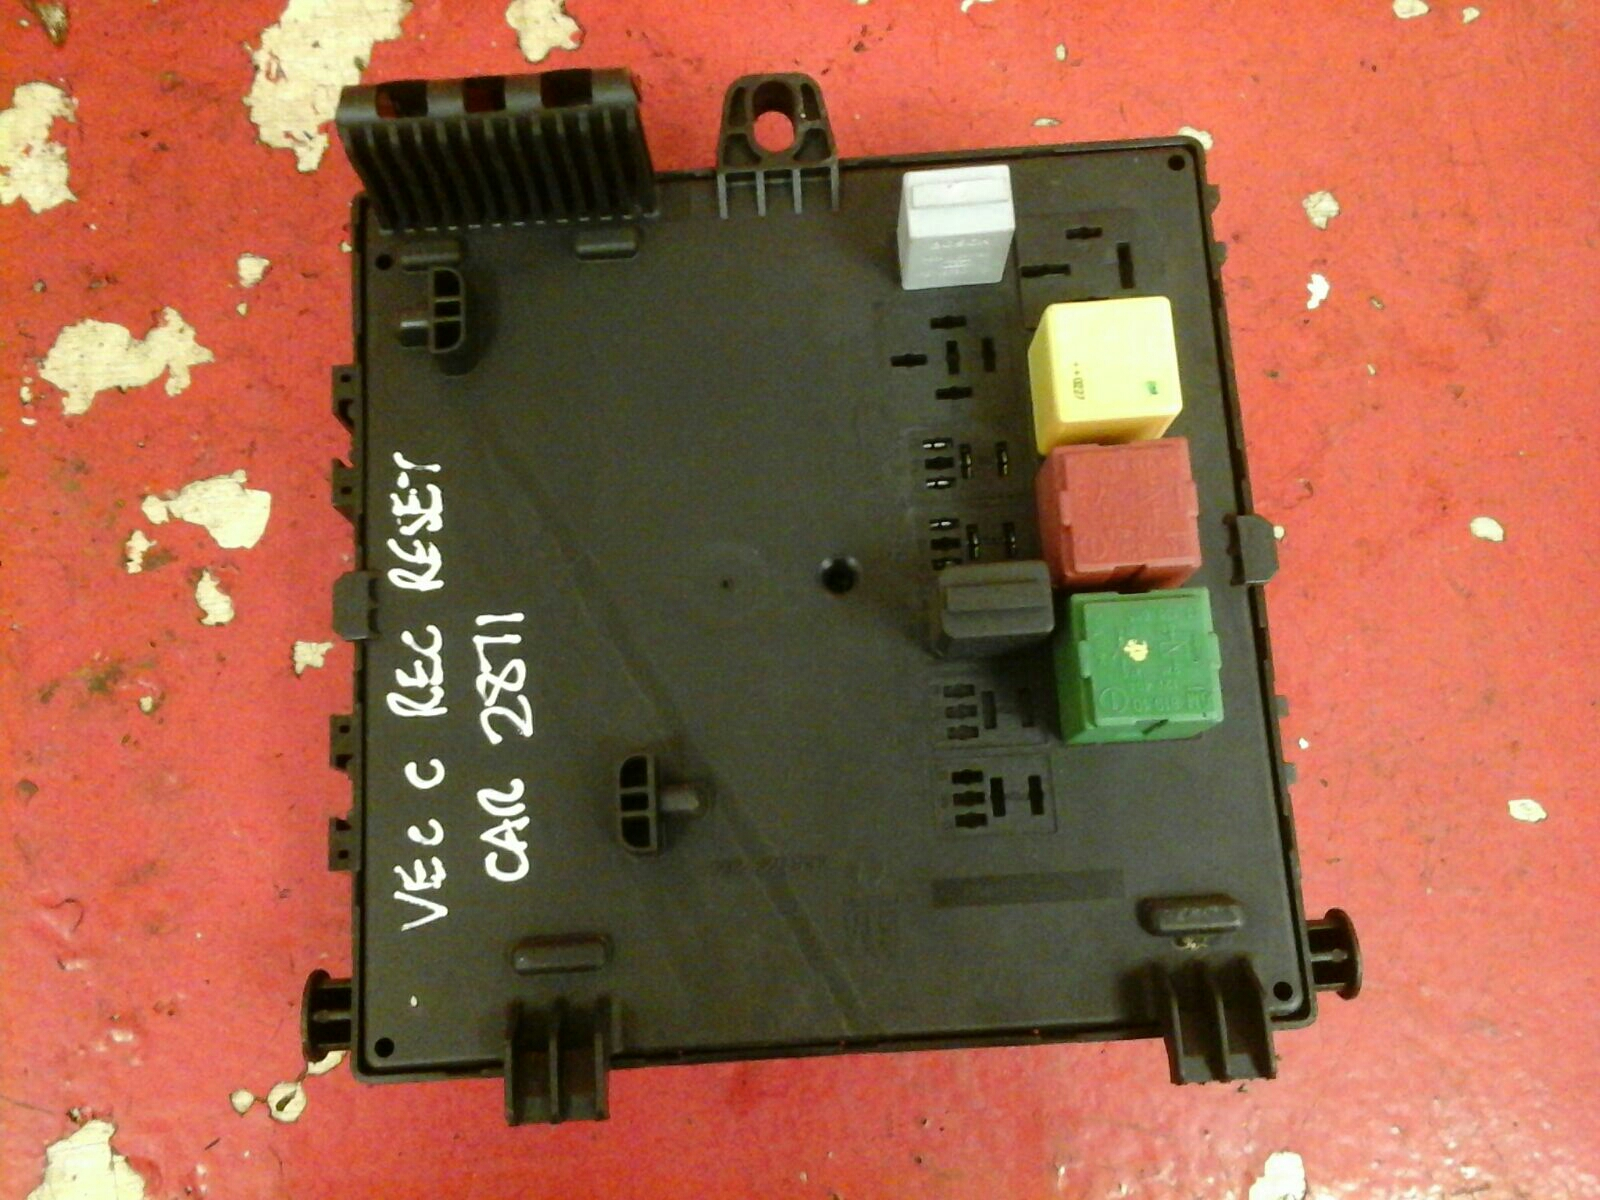 vauxhall vectra c rec rear electrical control module fuse box ... on tie rod removal, breaker box removal, a/c compressor removal, battery box removal, smog pump removal, transmission removal, fan clutch removal, ignition switch removal, engine removal,